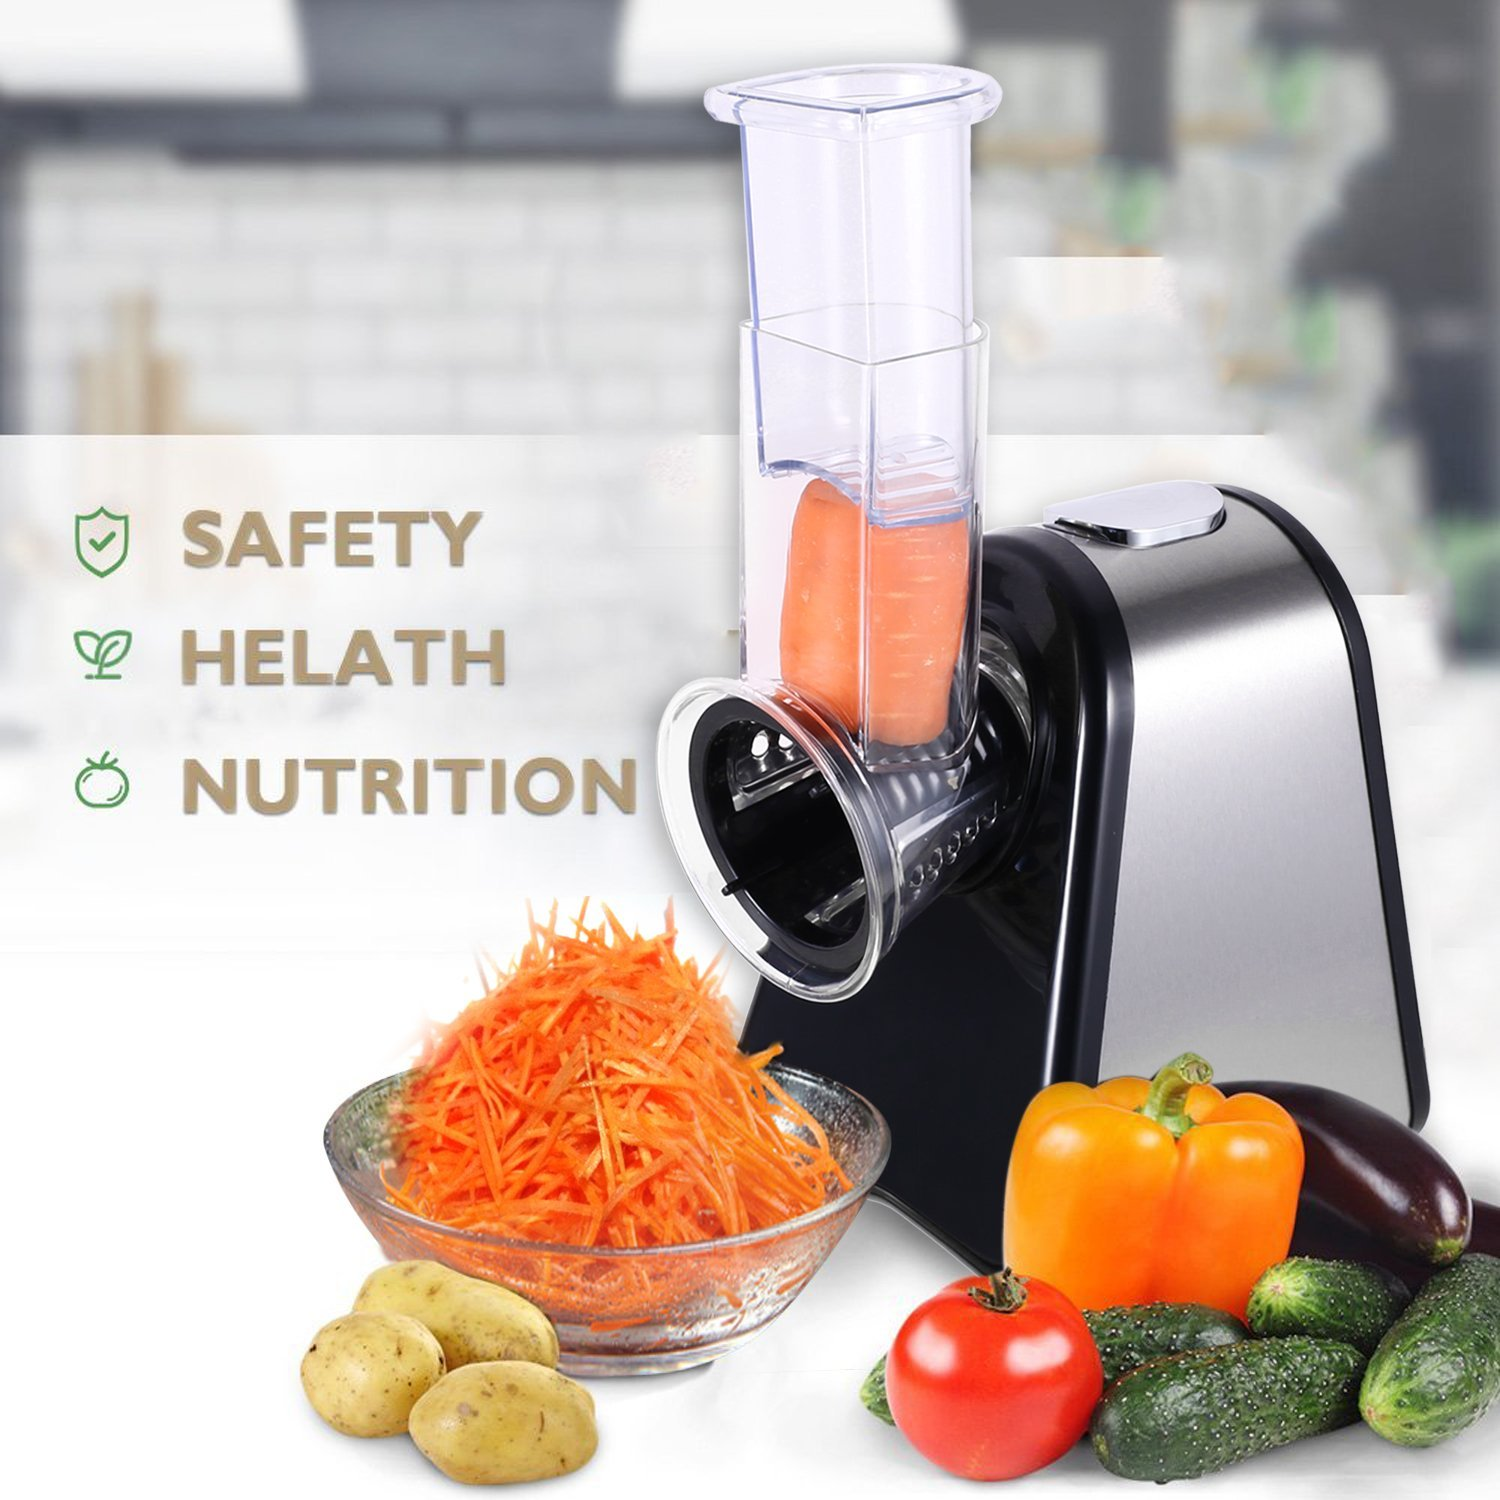 Professional Salad Maker Electric Slicer/Shredder with One-Touch Control and 4 Free Attachments for fruits, vegetables, and cheeses